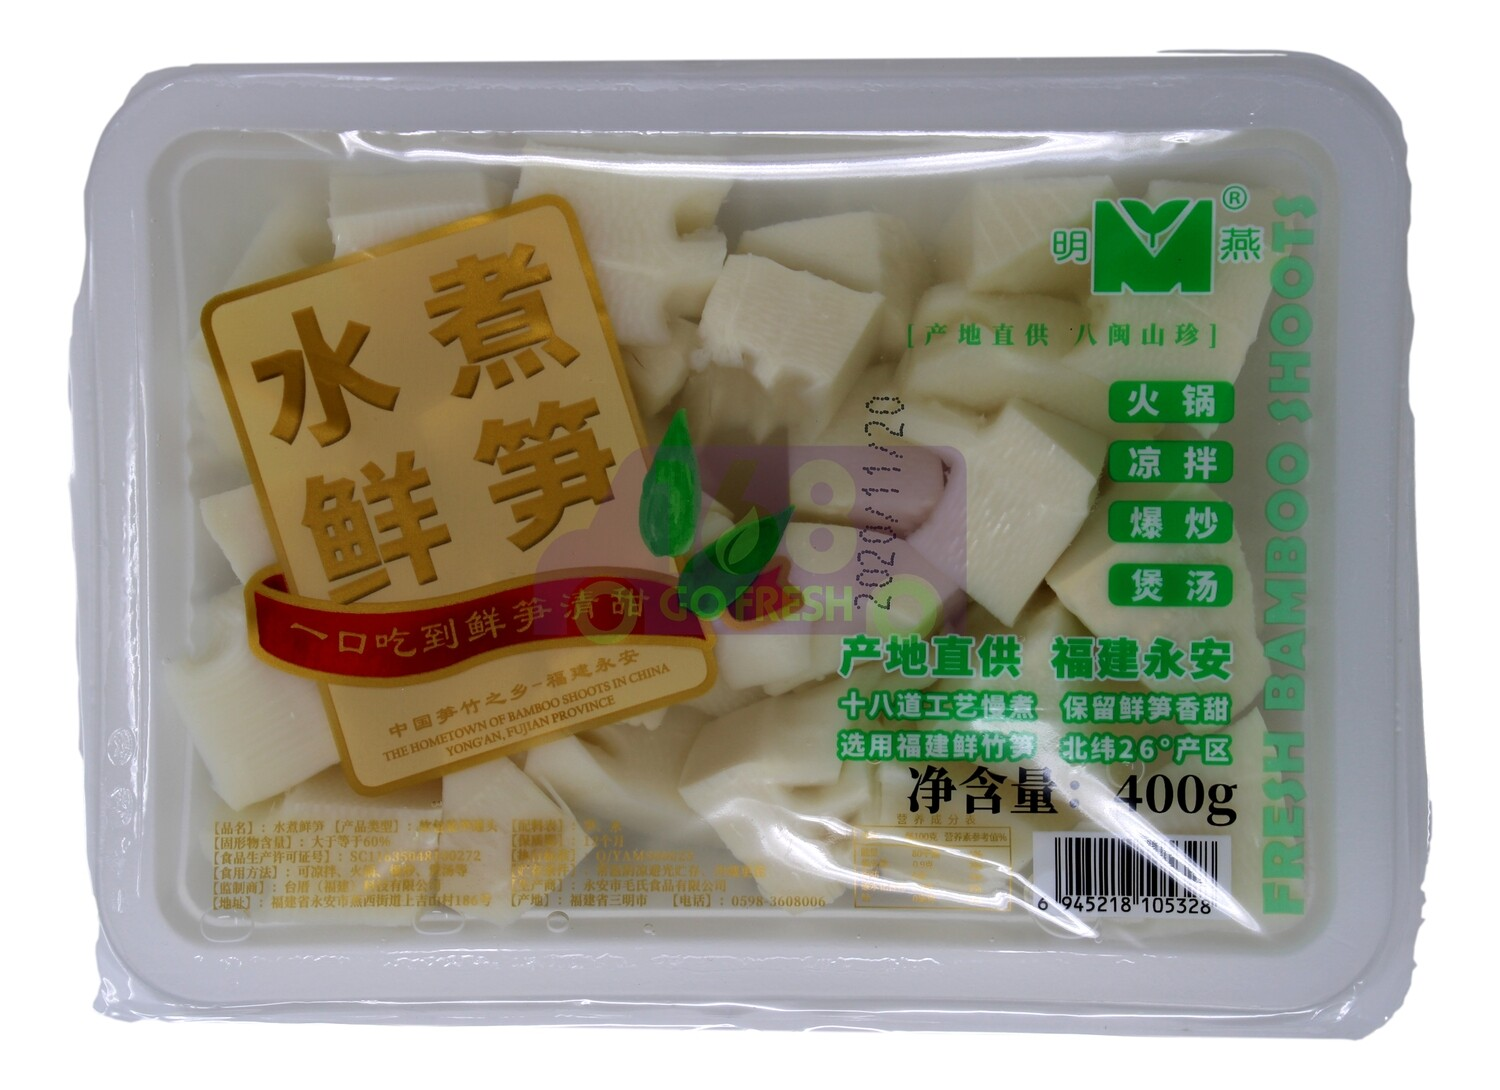 FRESH BAMBOO SHOOTS 明燕 水煮鲜笋(400G)